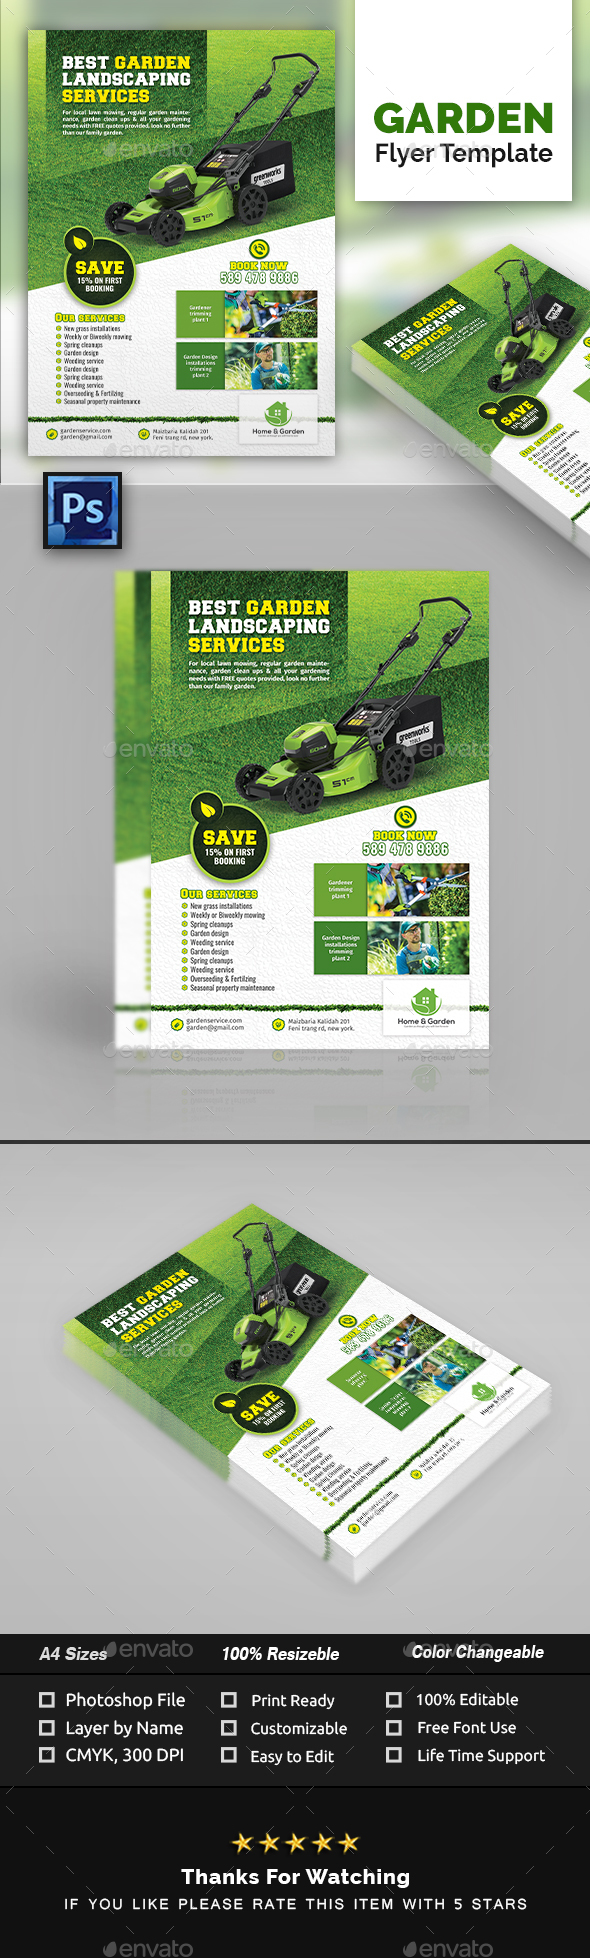 Garden Landscape Flyer Template By Creative Touch Graphicriver